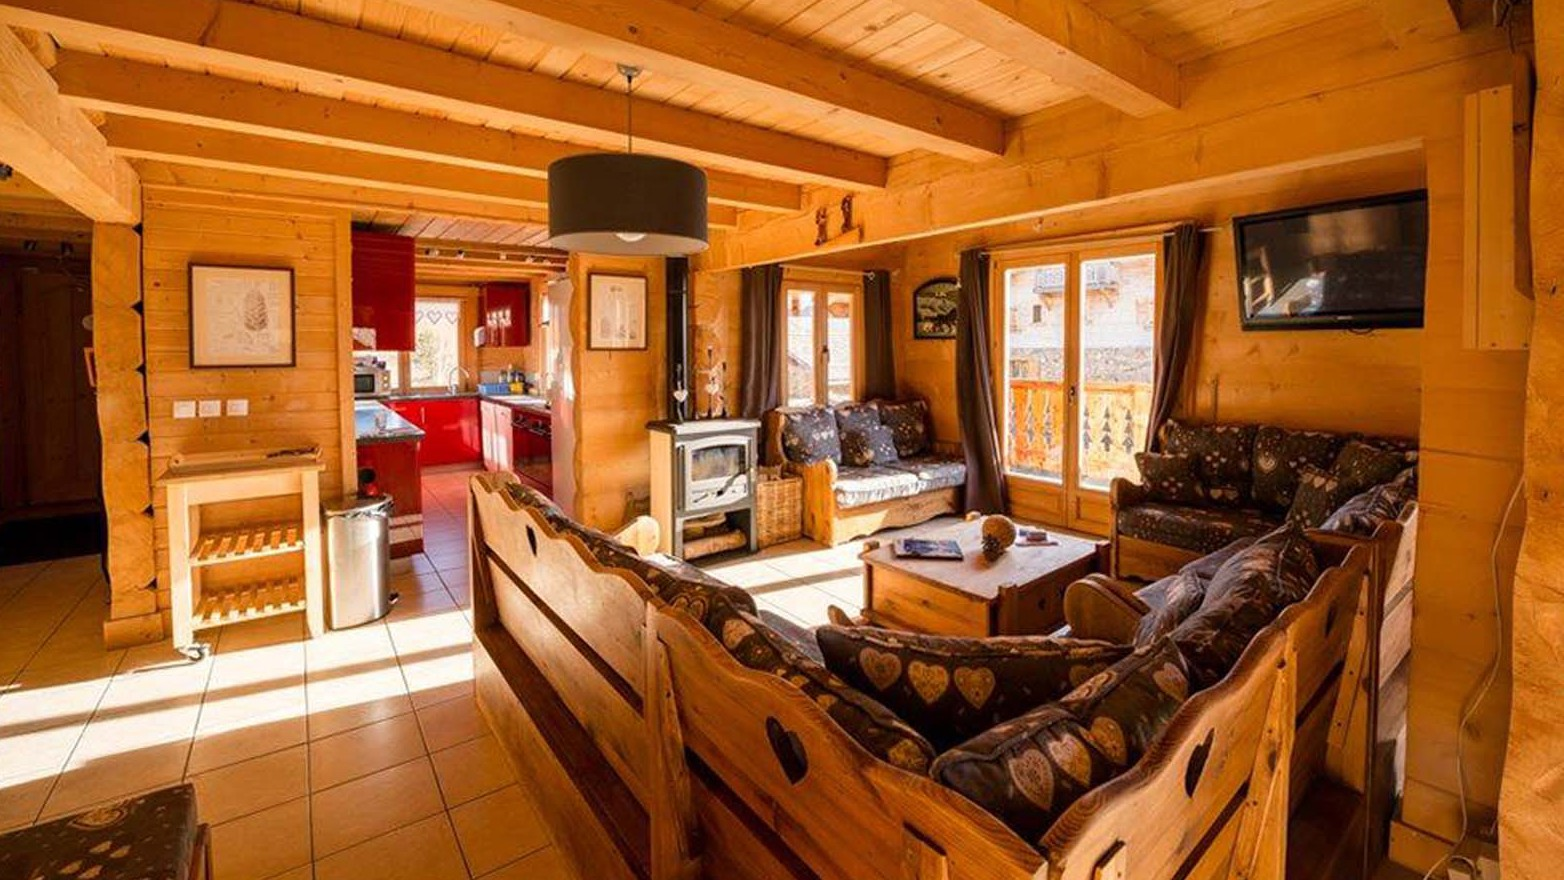 Living Area - Chalet Louisa - Ski Chalet in Alpe d'Huez, France